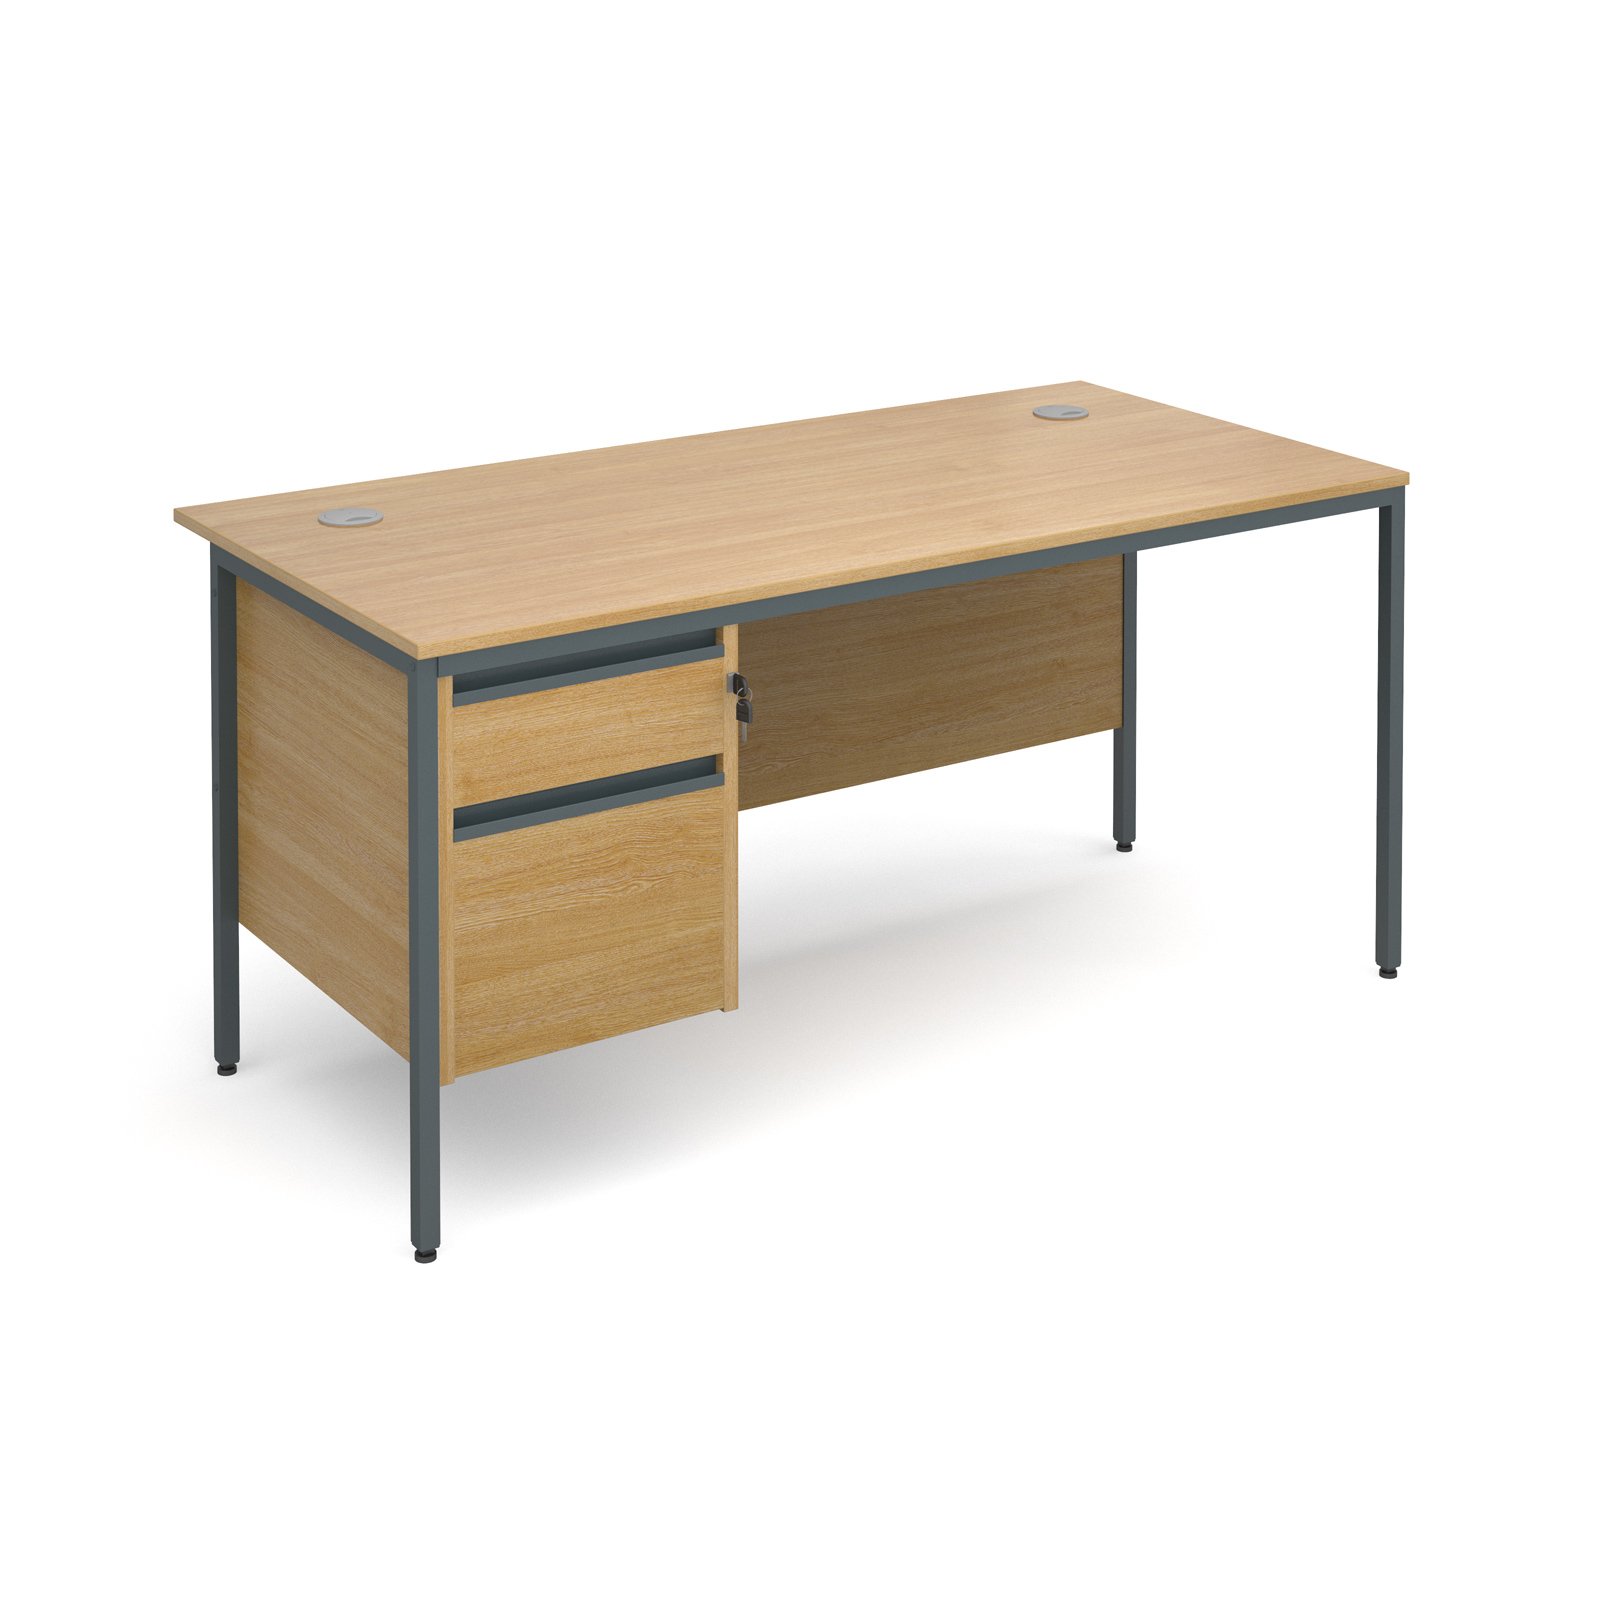 Maestro H frame straight desk with 2 drawer pedestal 1532mm - oak